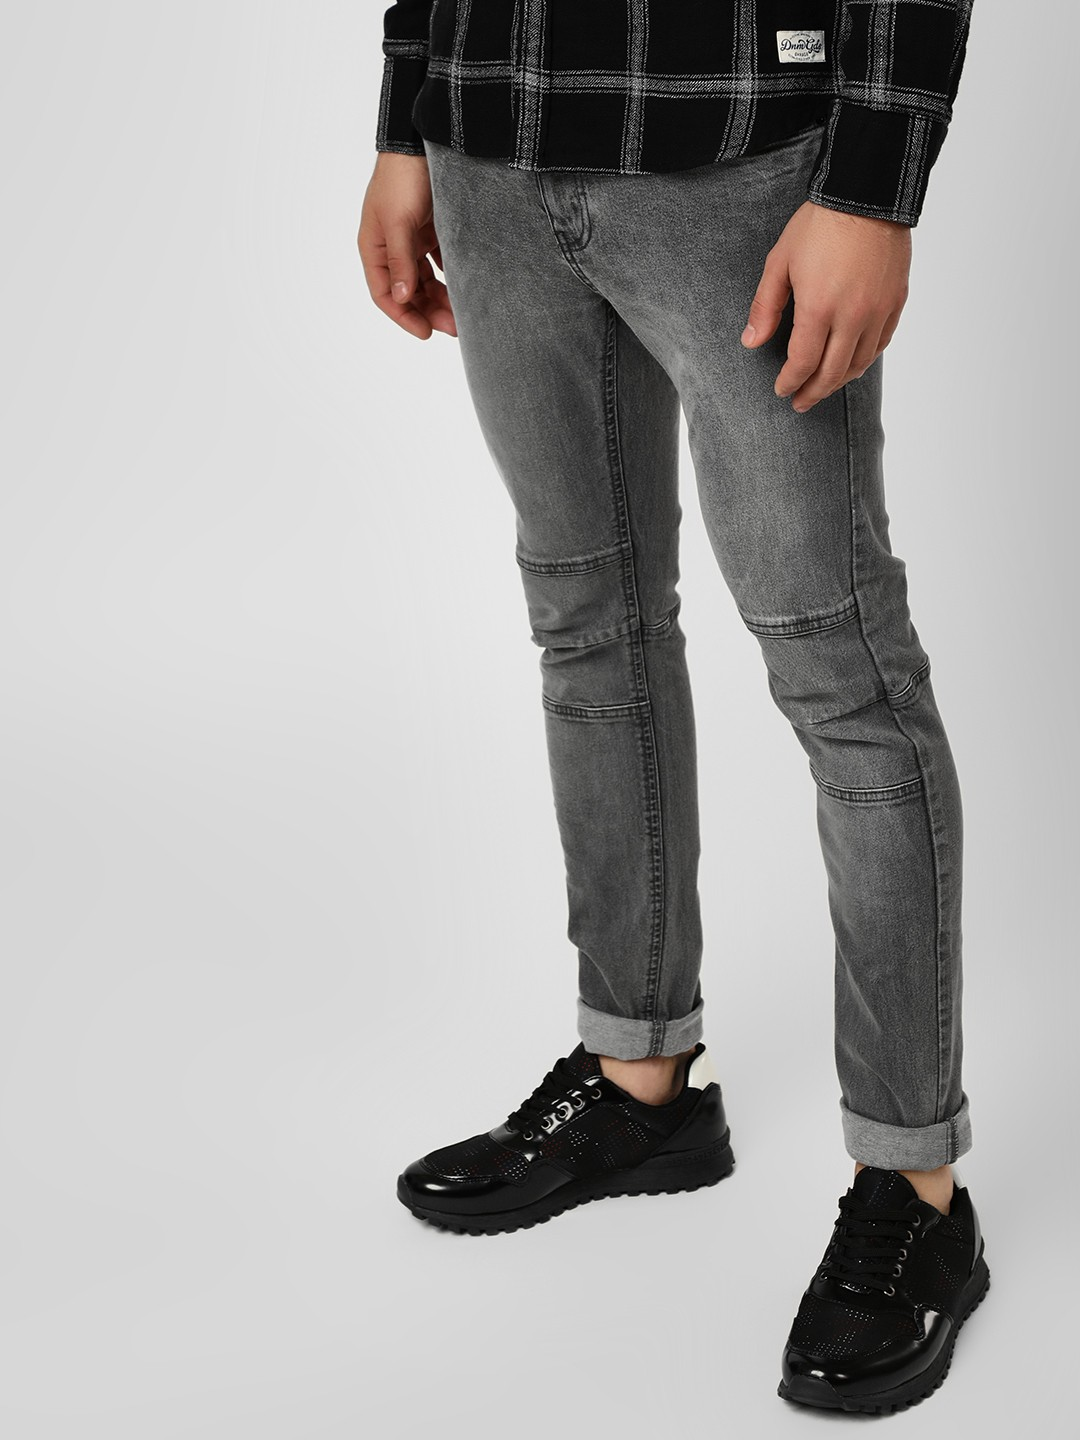 Blue Saint Grey Light Washed Skinny Fit Jeans 1